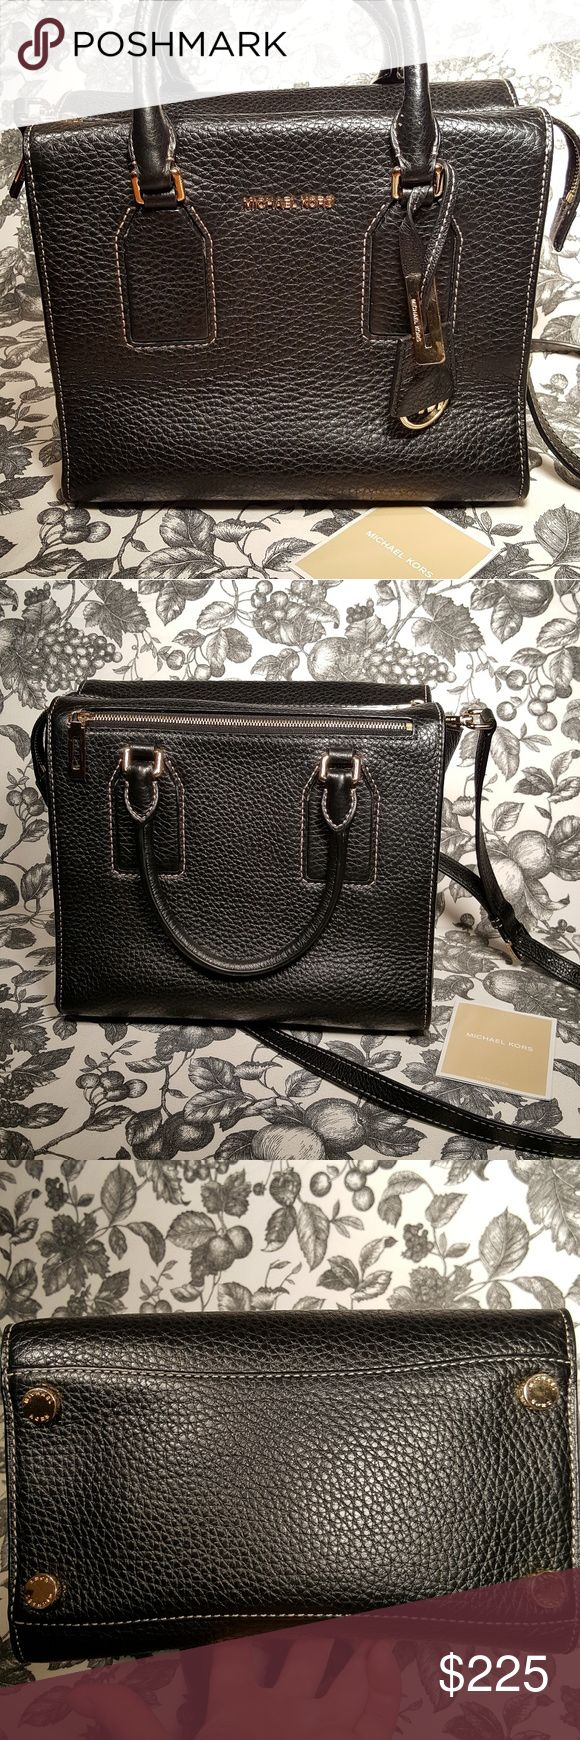 Michael Kors Selby Black Pebble Leather Satchel Michael Kors Medium Selby Black Pebble Leather Satchel Great pre-owned condition; some scratches on hardware from regular use and some minor white scuff marks on bottom piping (see photo #7). It's quite a sturdy bag! Gold tone hardware Comes with care card but no dustbag (which I used for another bag); original tag in last pic. *This is the larger one of the Selby style!* Michael Kors Bags Satchels